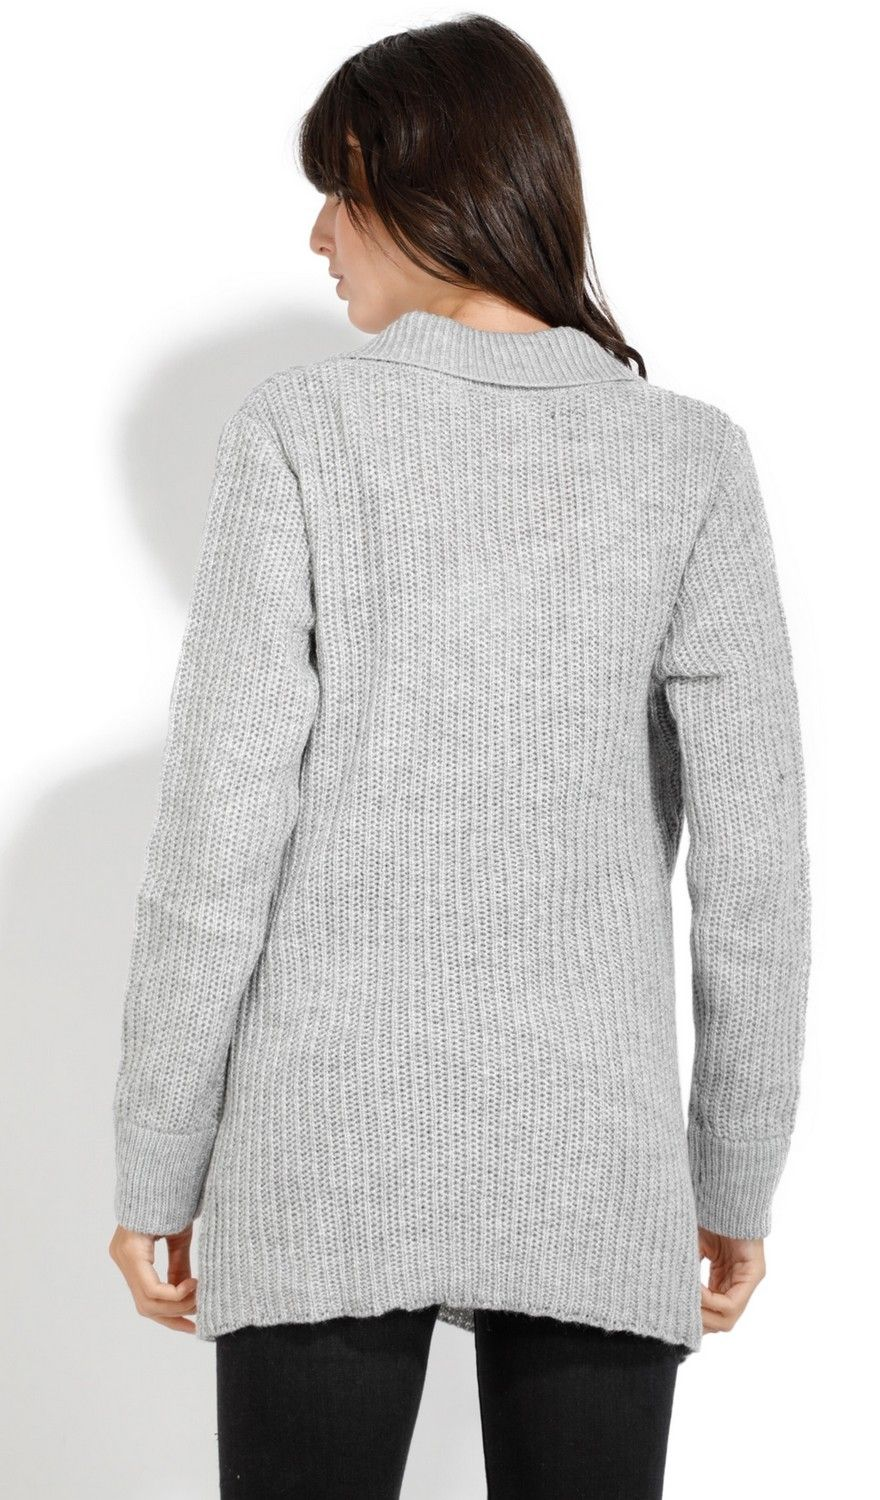 Assuili Buttoned Collar Sweater with Pockets in Grey